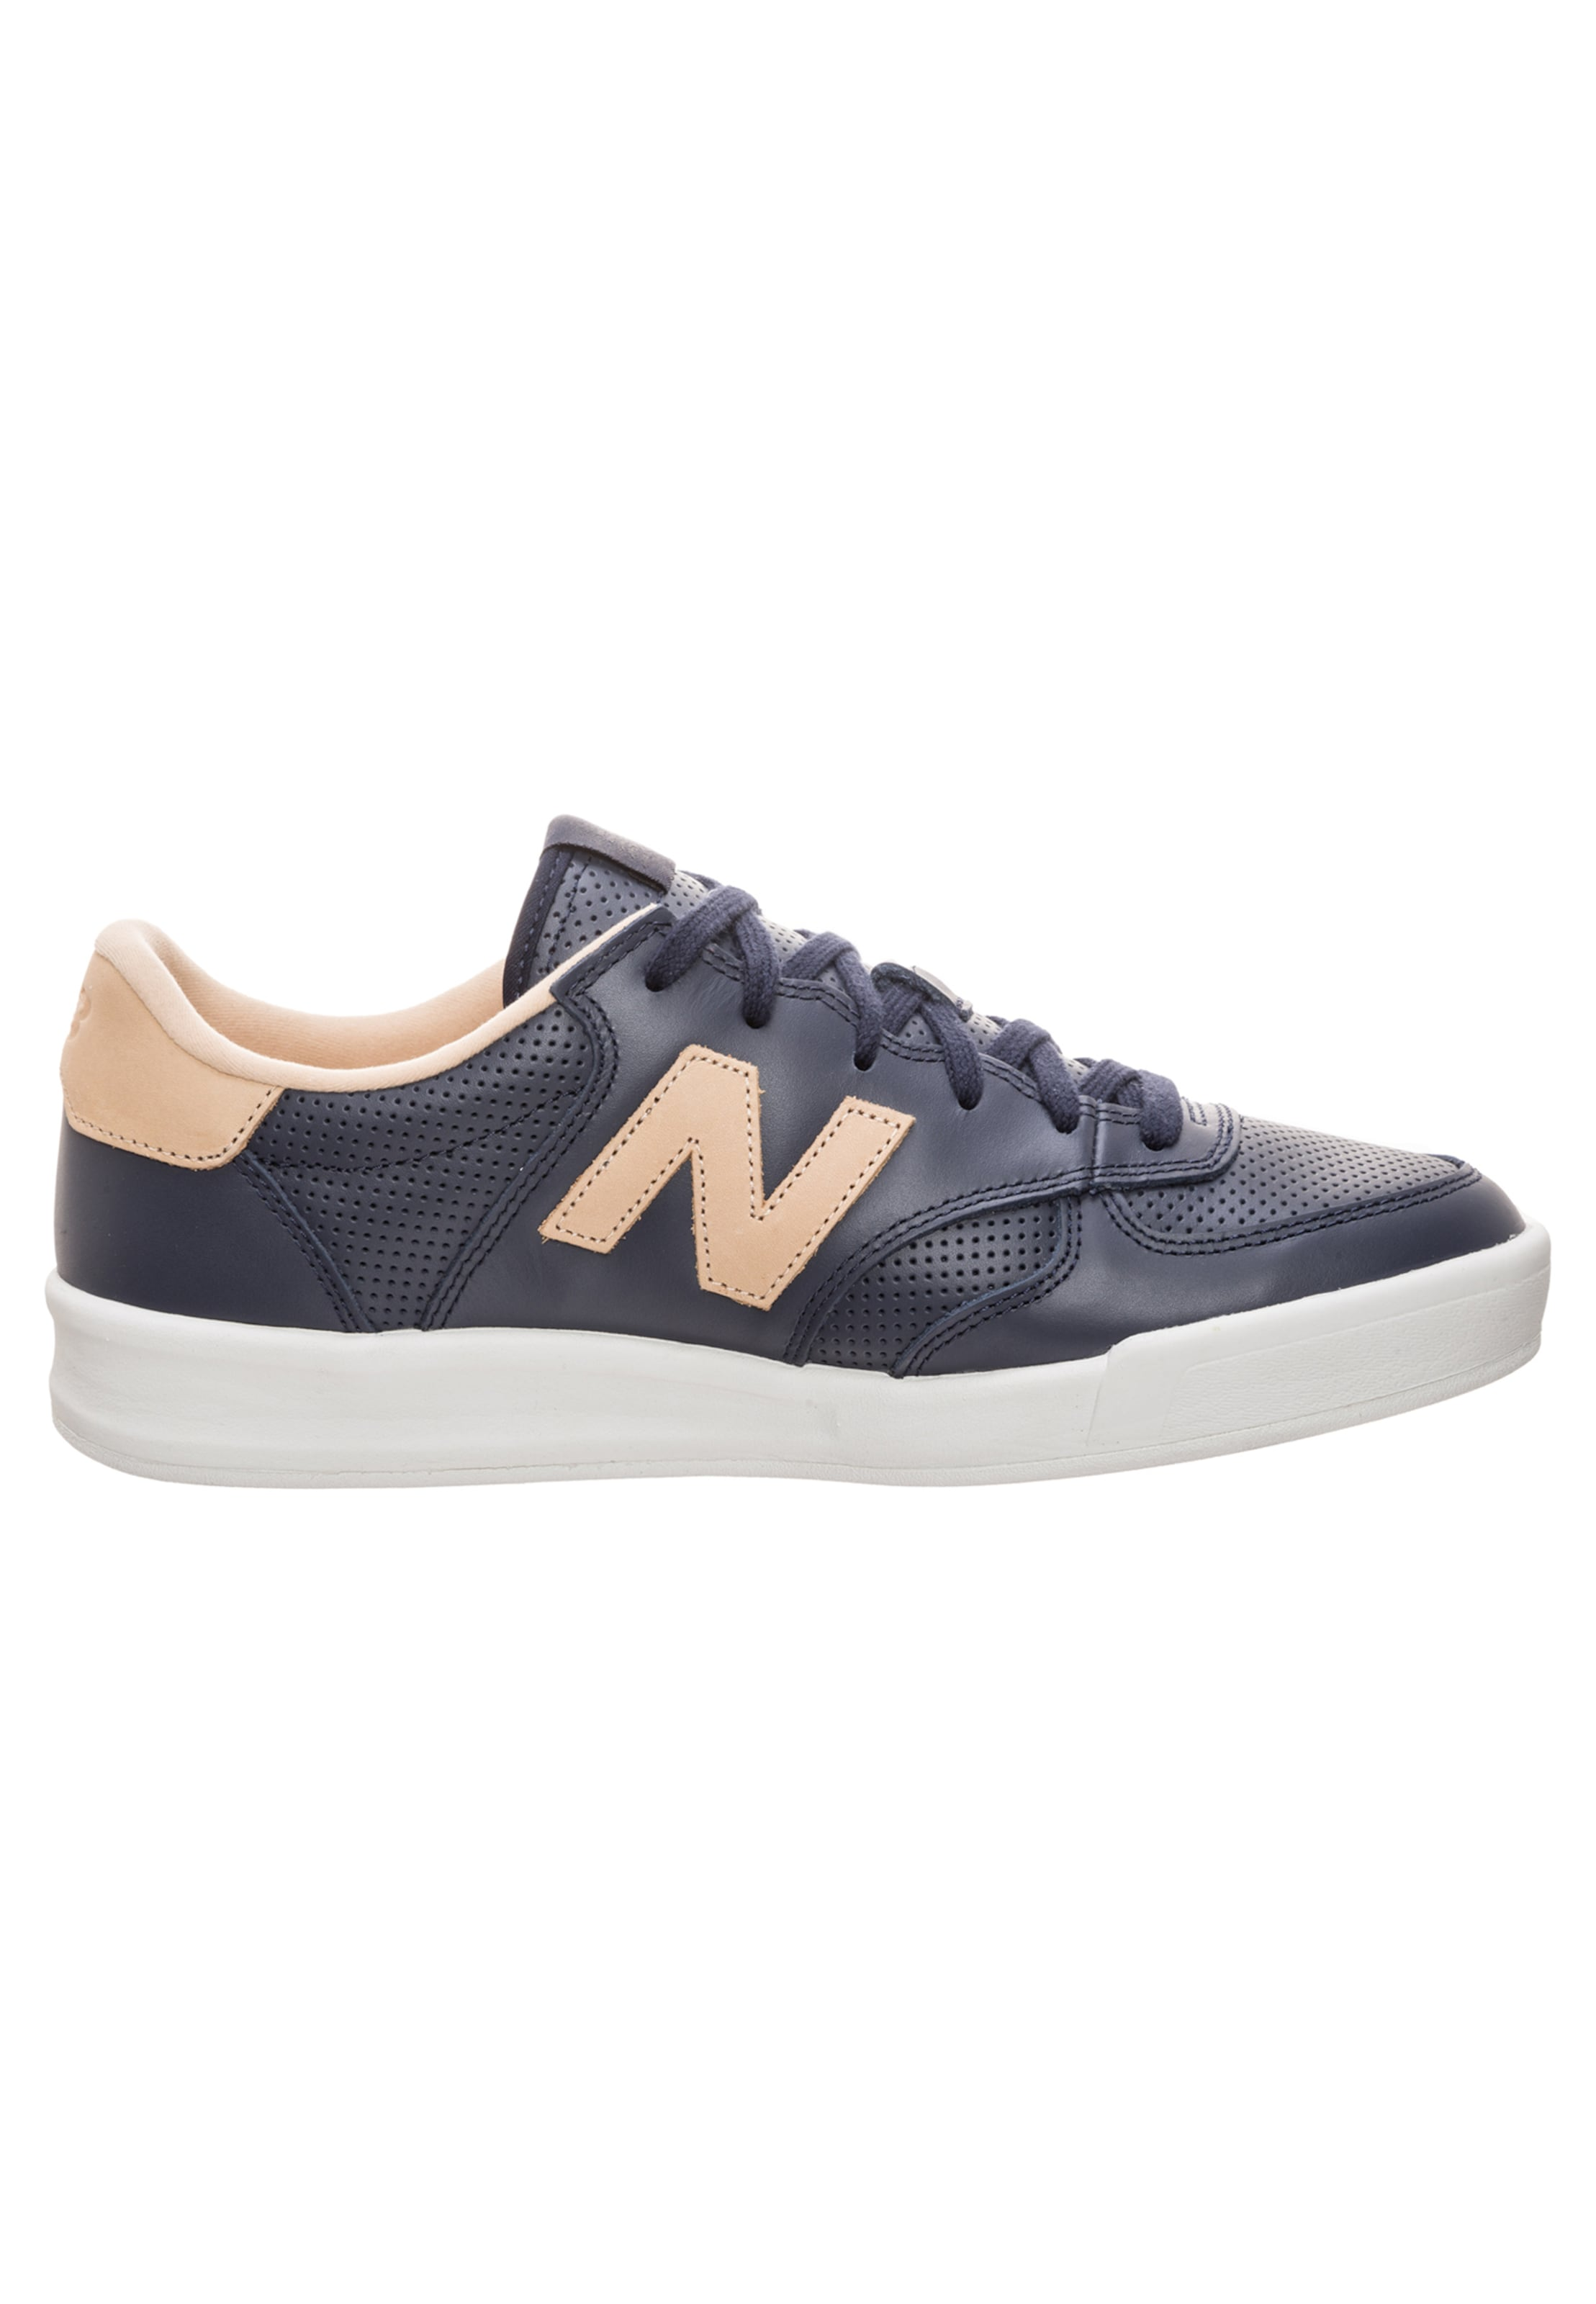 Baskets Basses En New Balance Bleu wPn0kX8O